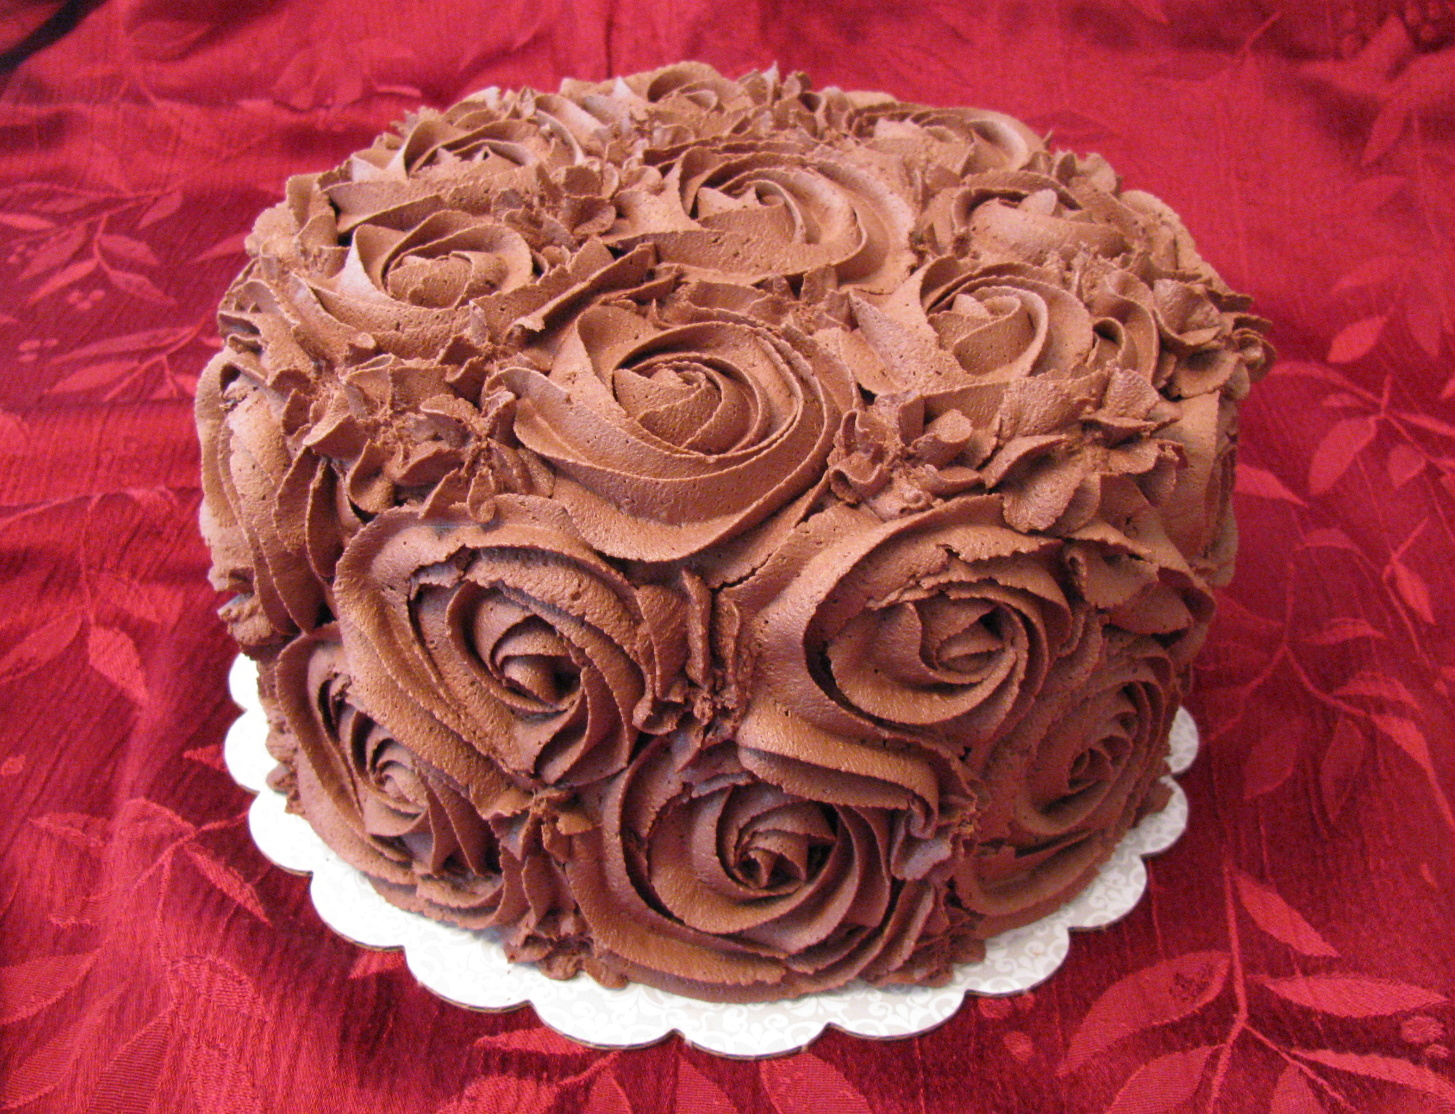 : chocolate frosting cake decorating ideas - www.pureclipart.com